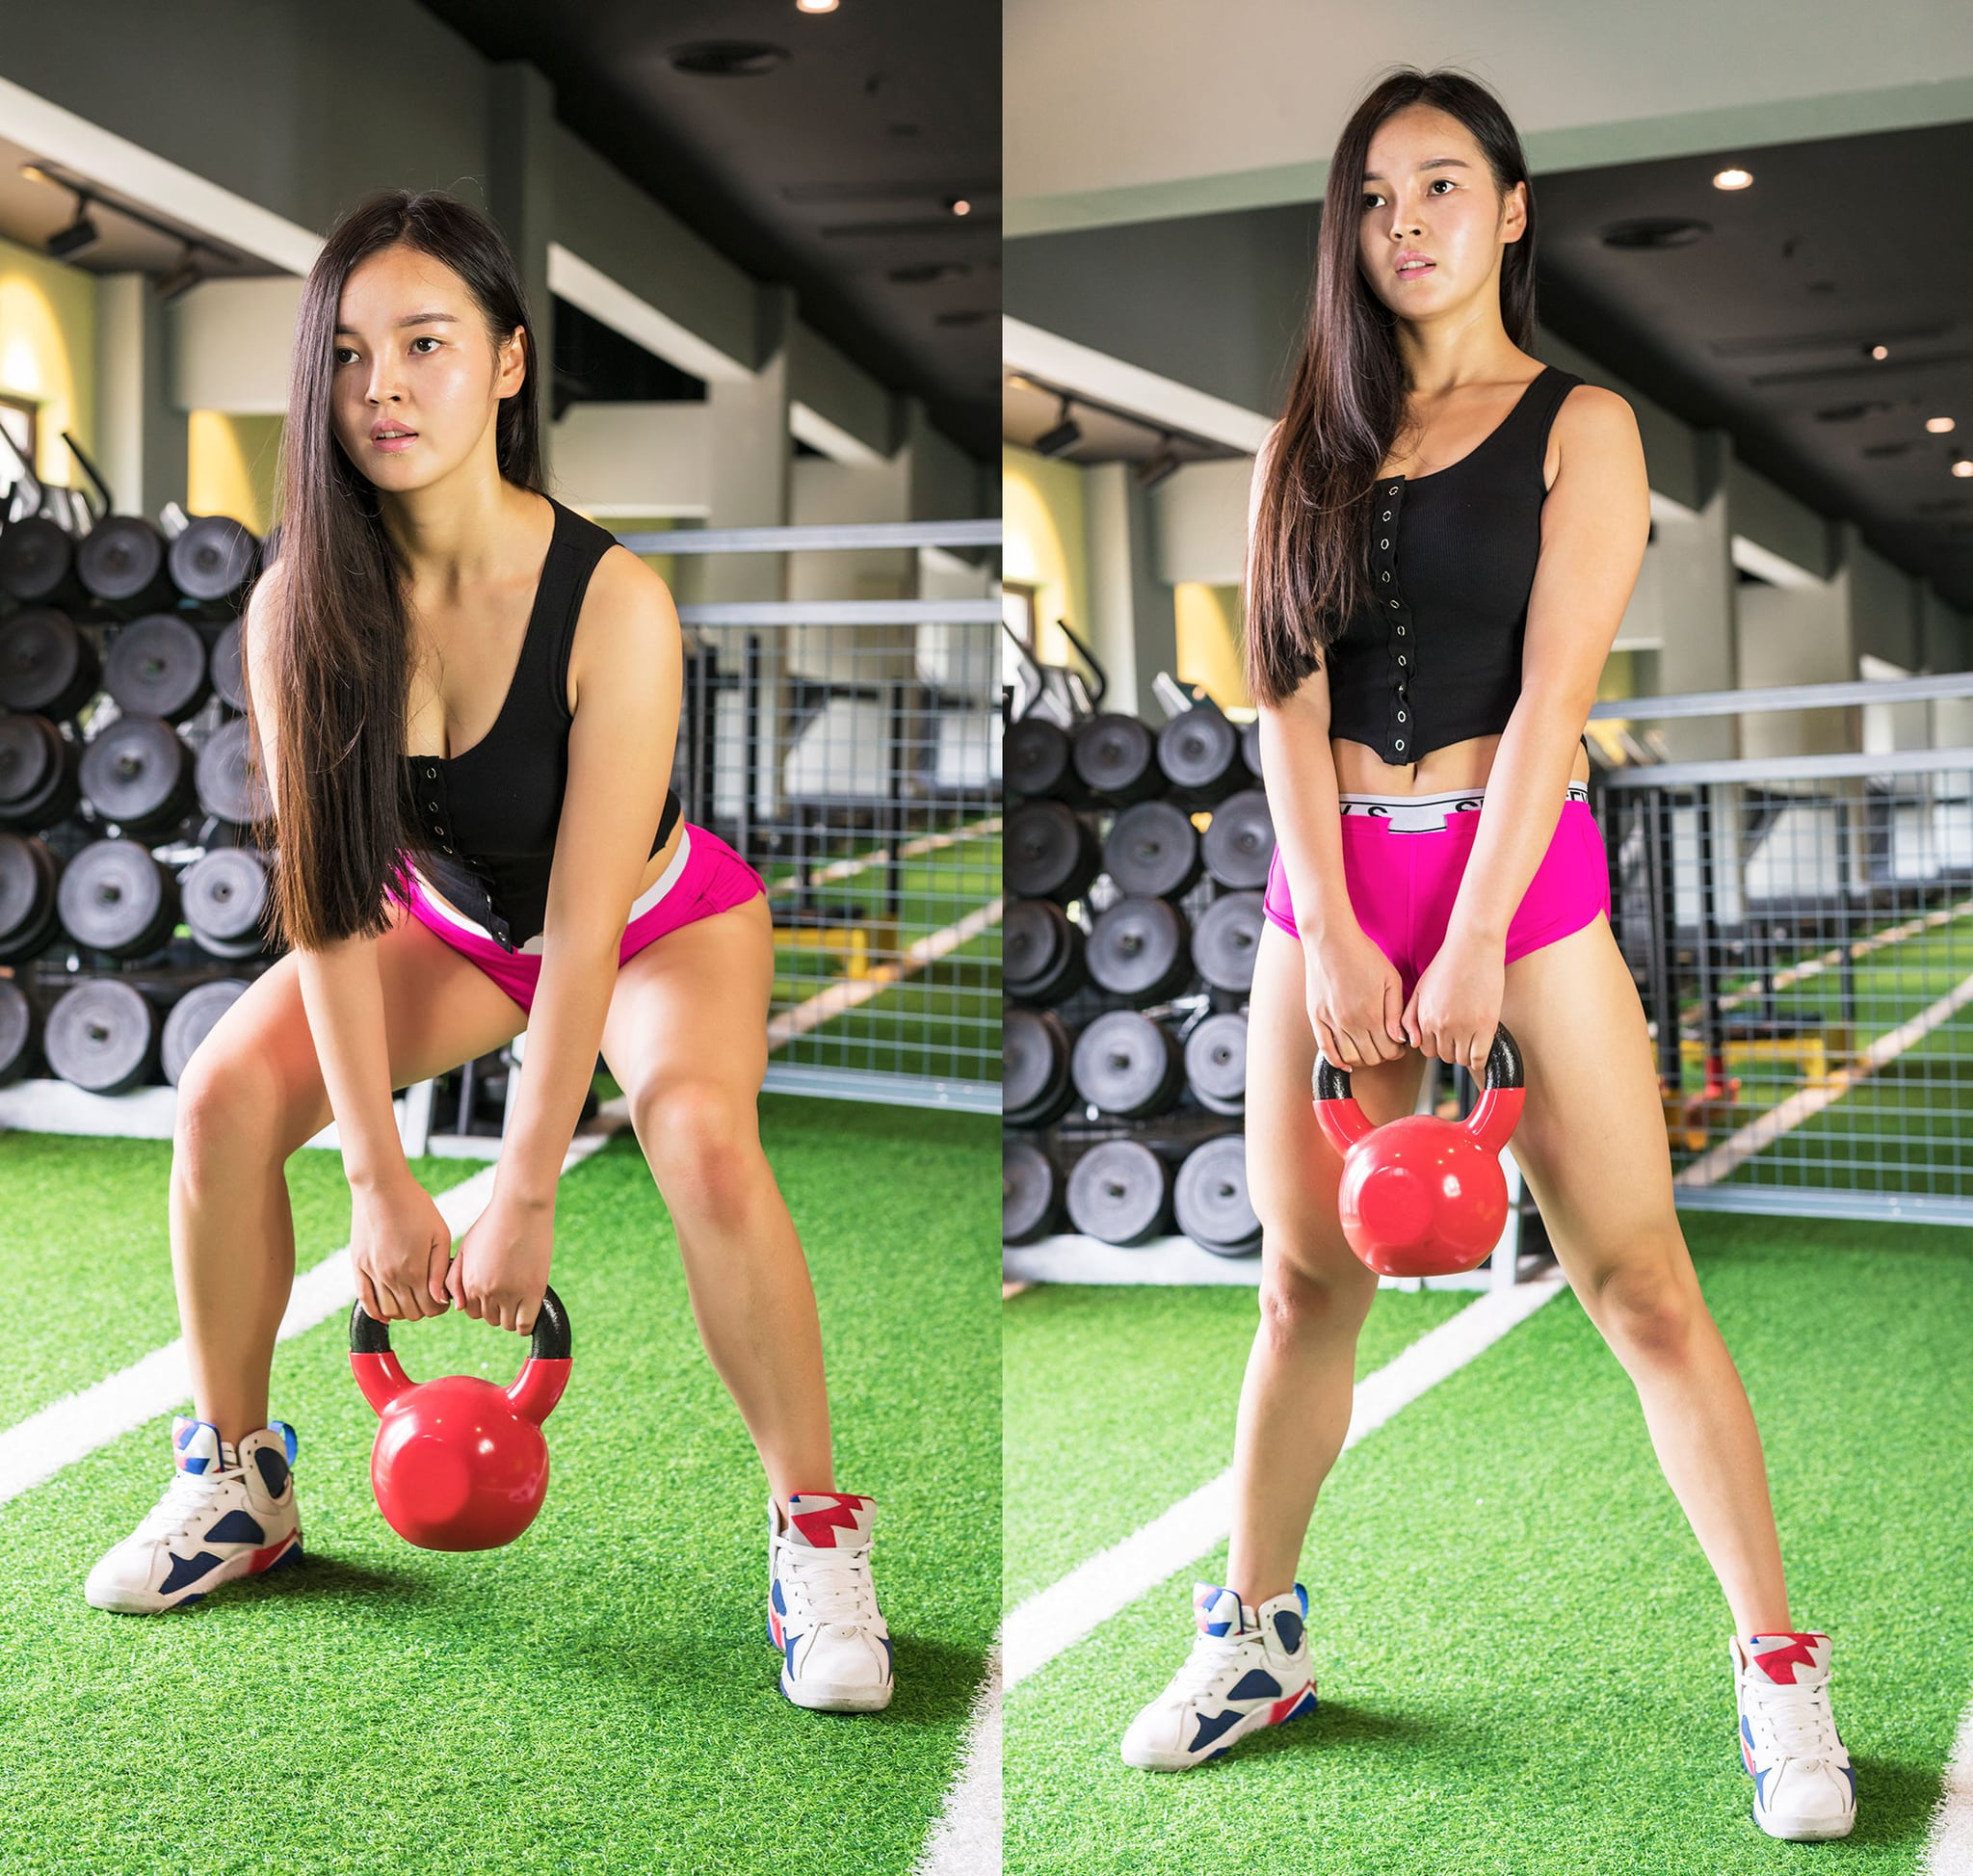 All You Need Is 1 Kettlebell and This 1 Move to Build Muscle to Help You Lose Weight